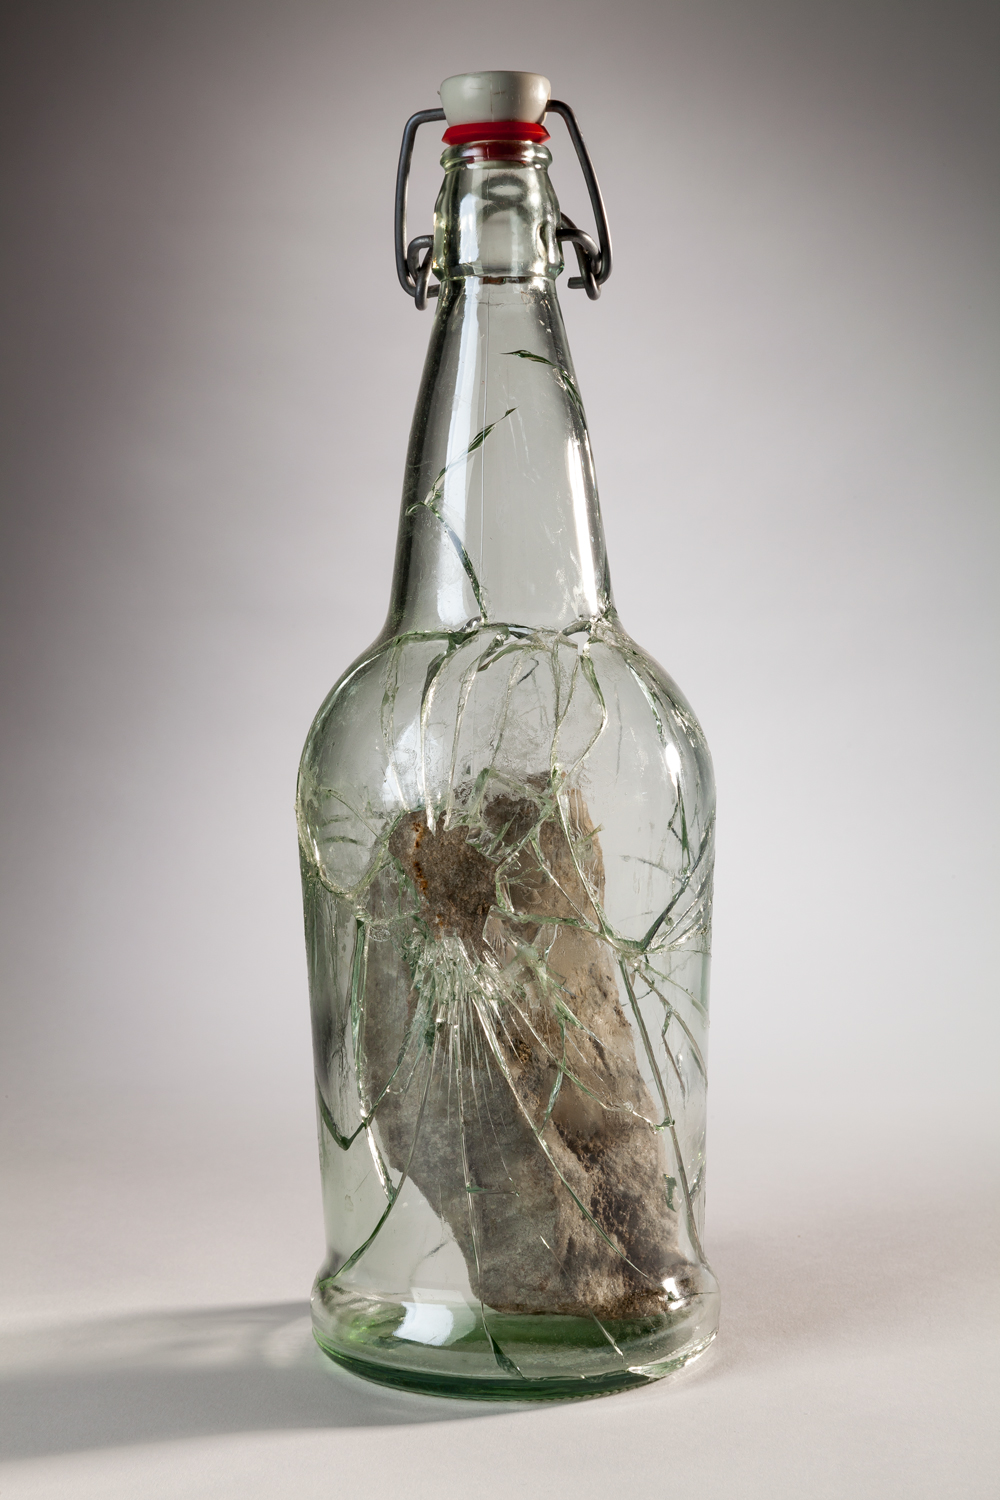 Rock-inside-bottle-774.jpg